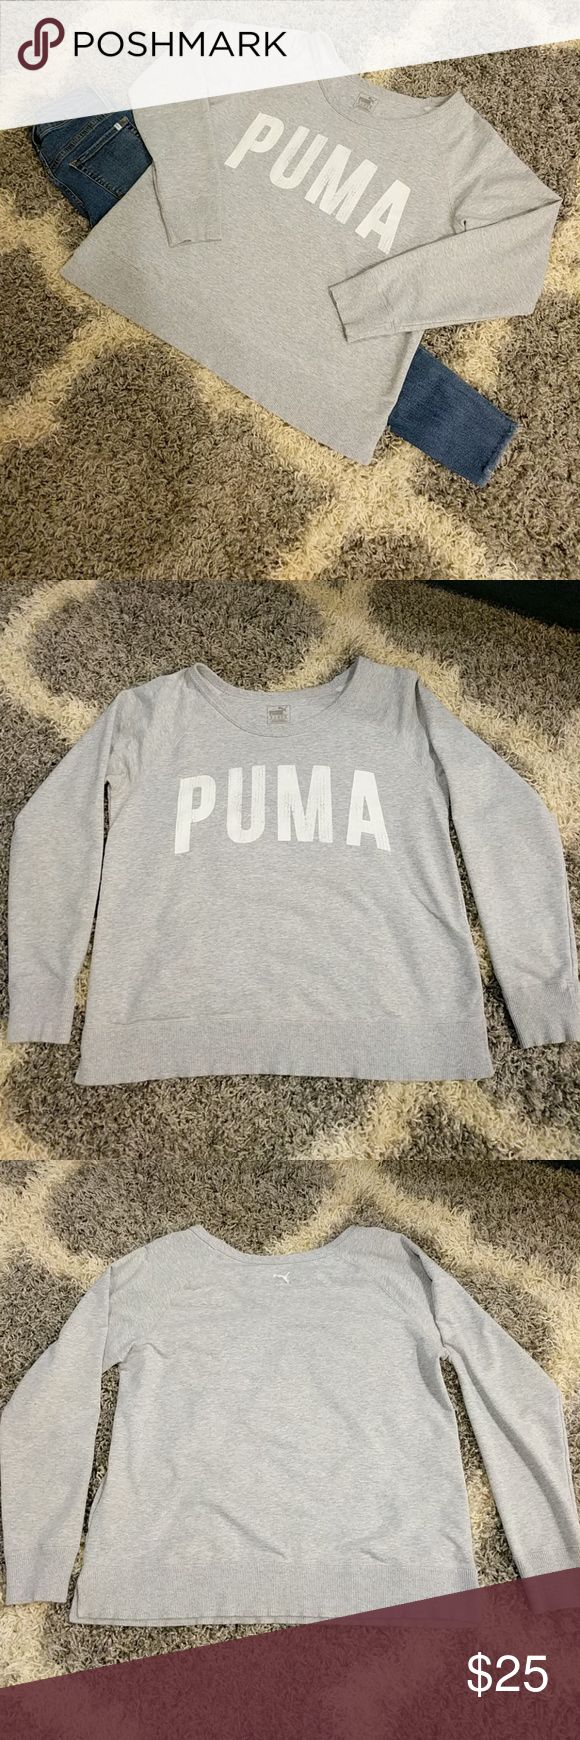 Light weight Puma sweatshirt Light gray light weight Puma sweatshirt.  25 inches long, 21 inches at the bust, 27.5 inch long sleeves. Wide neck at 17 inches across. In great shape. Puma Tops Sweatshirts & Hoodies